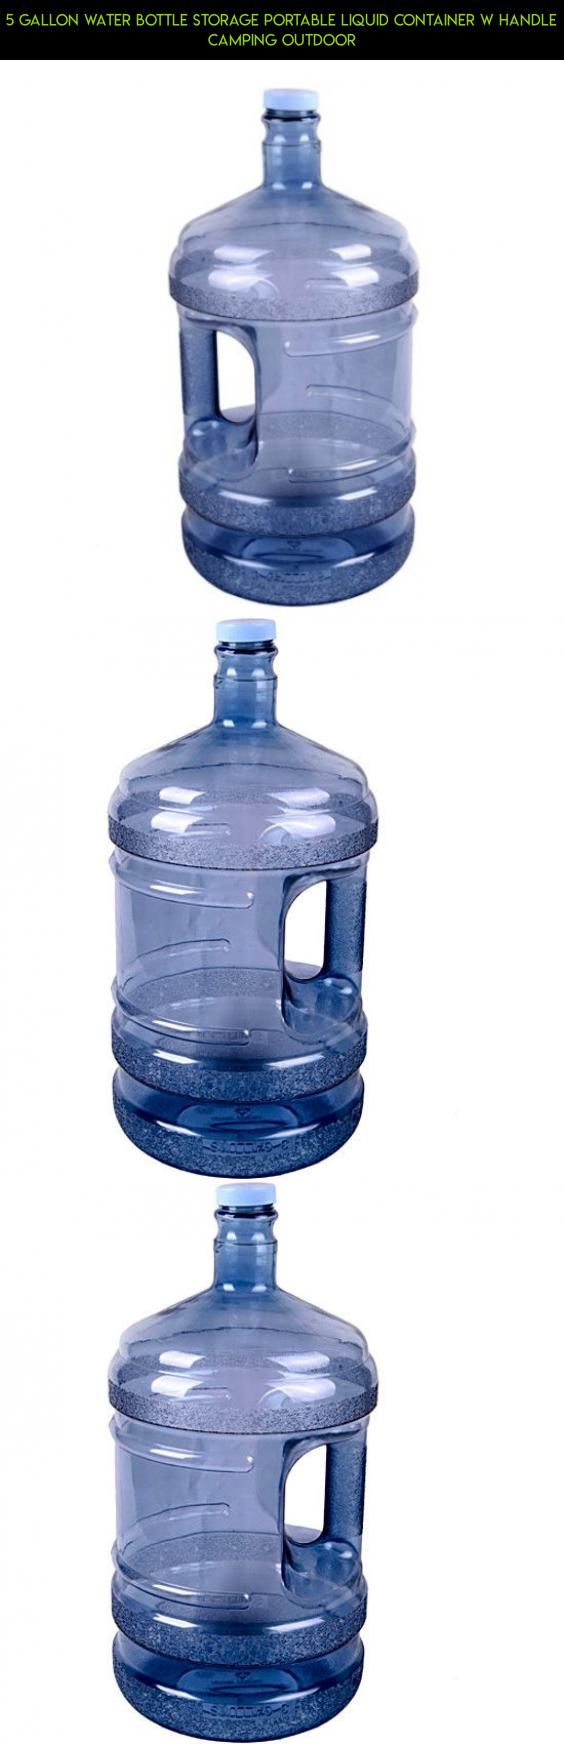 5 Gallon Water Bottle Storage Portable Liquid Container w Handle Camping Outdoor #gadgets #kit #bottle #plans #camera #tech #drone #storage #products #shopping #parts #technology #water #racing #fpv